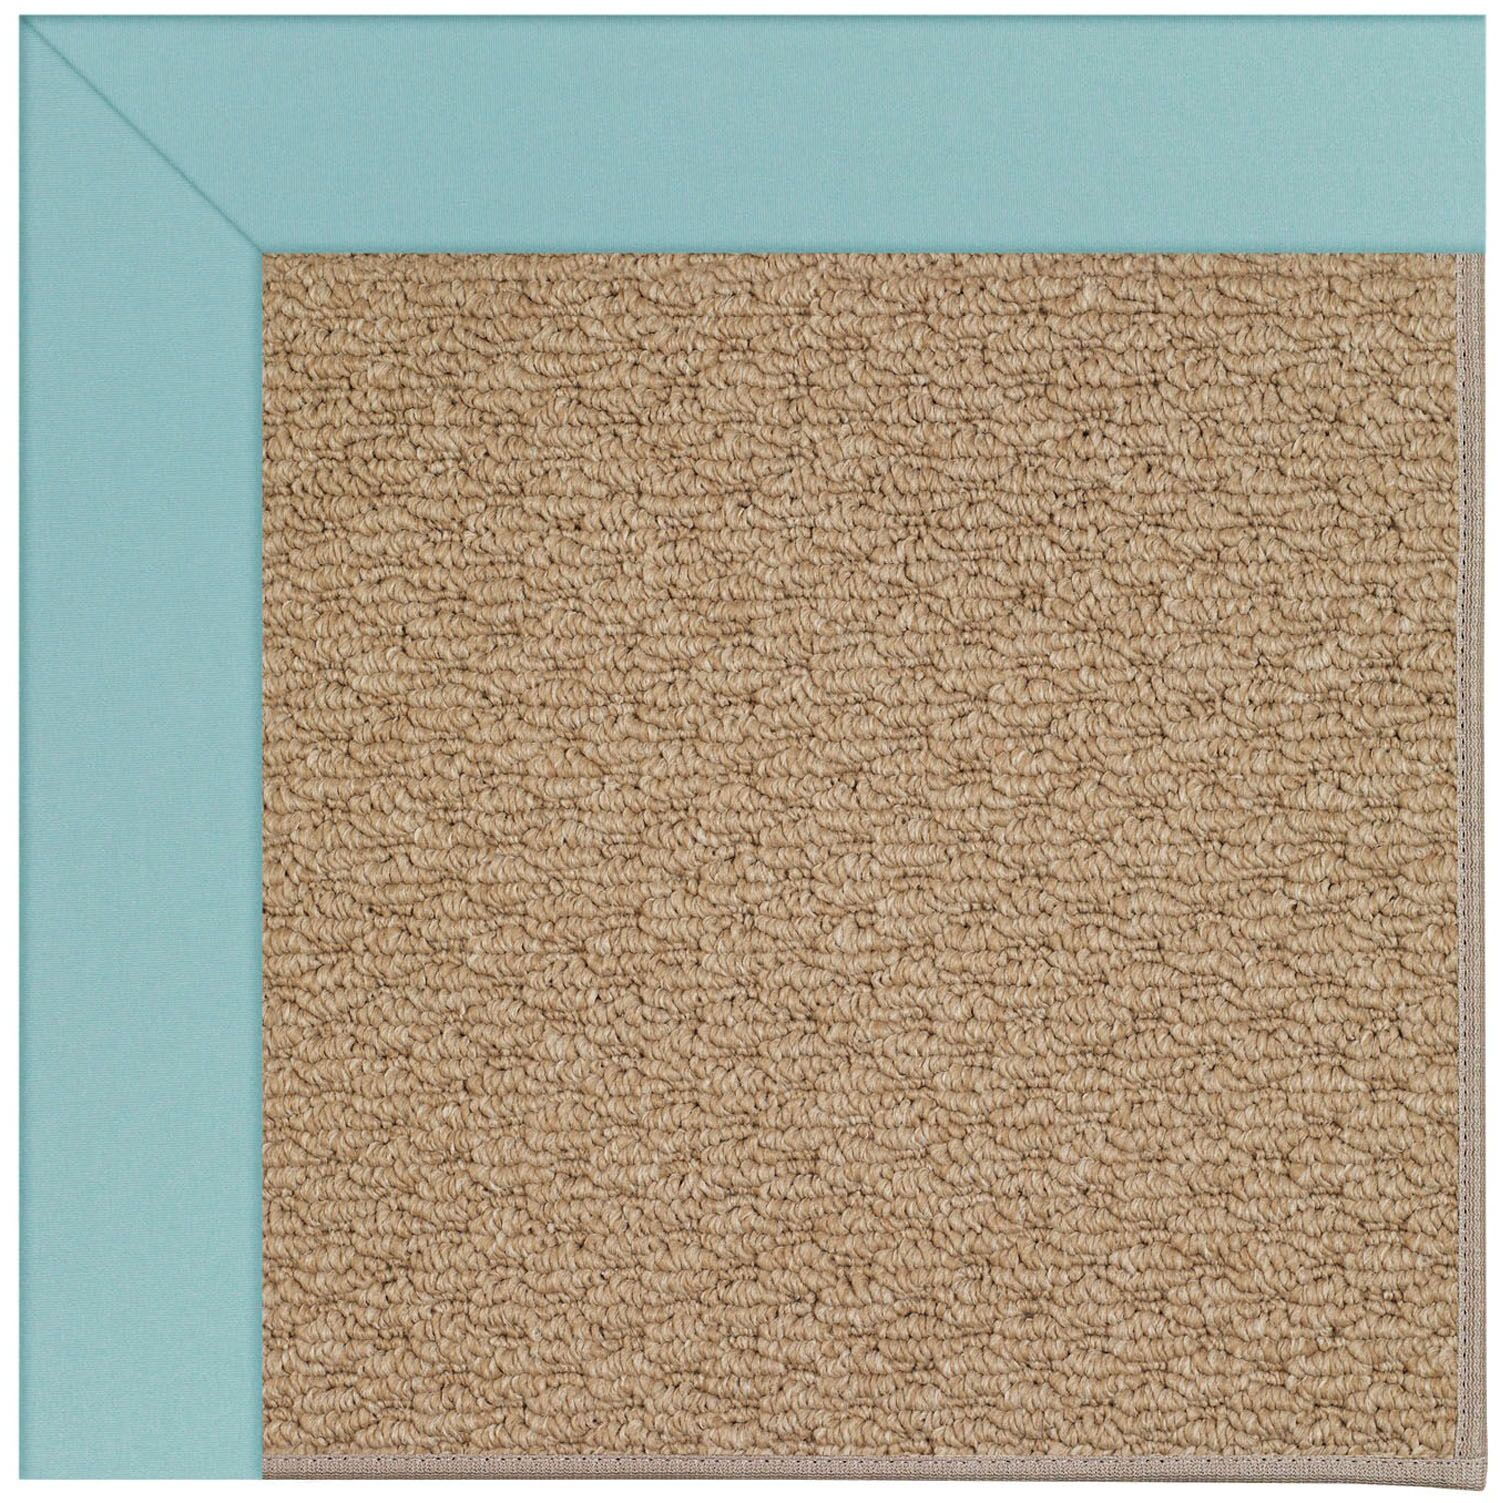 Lisle Machine Tufted Seafaring Blue/Brown Indoor/Outdoor Area Rug Rug Size: Square 6'